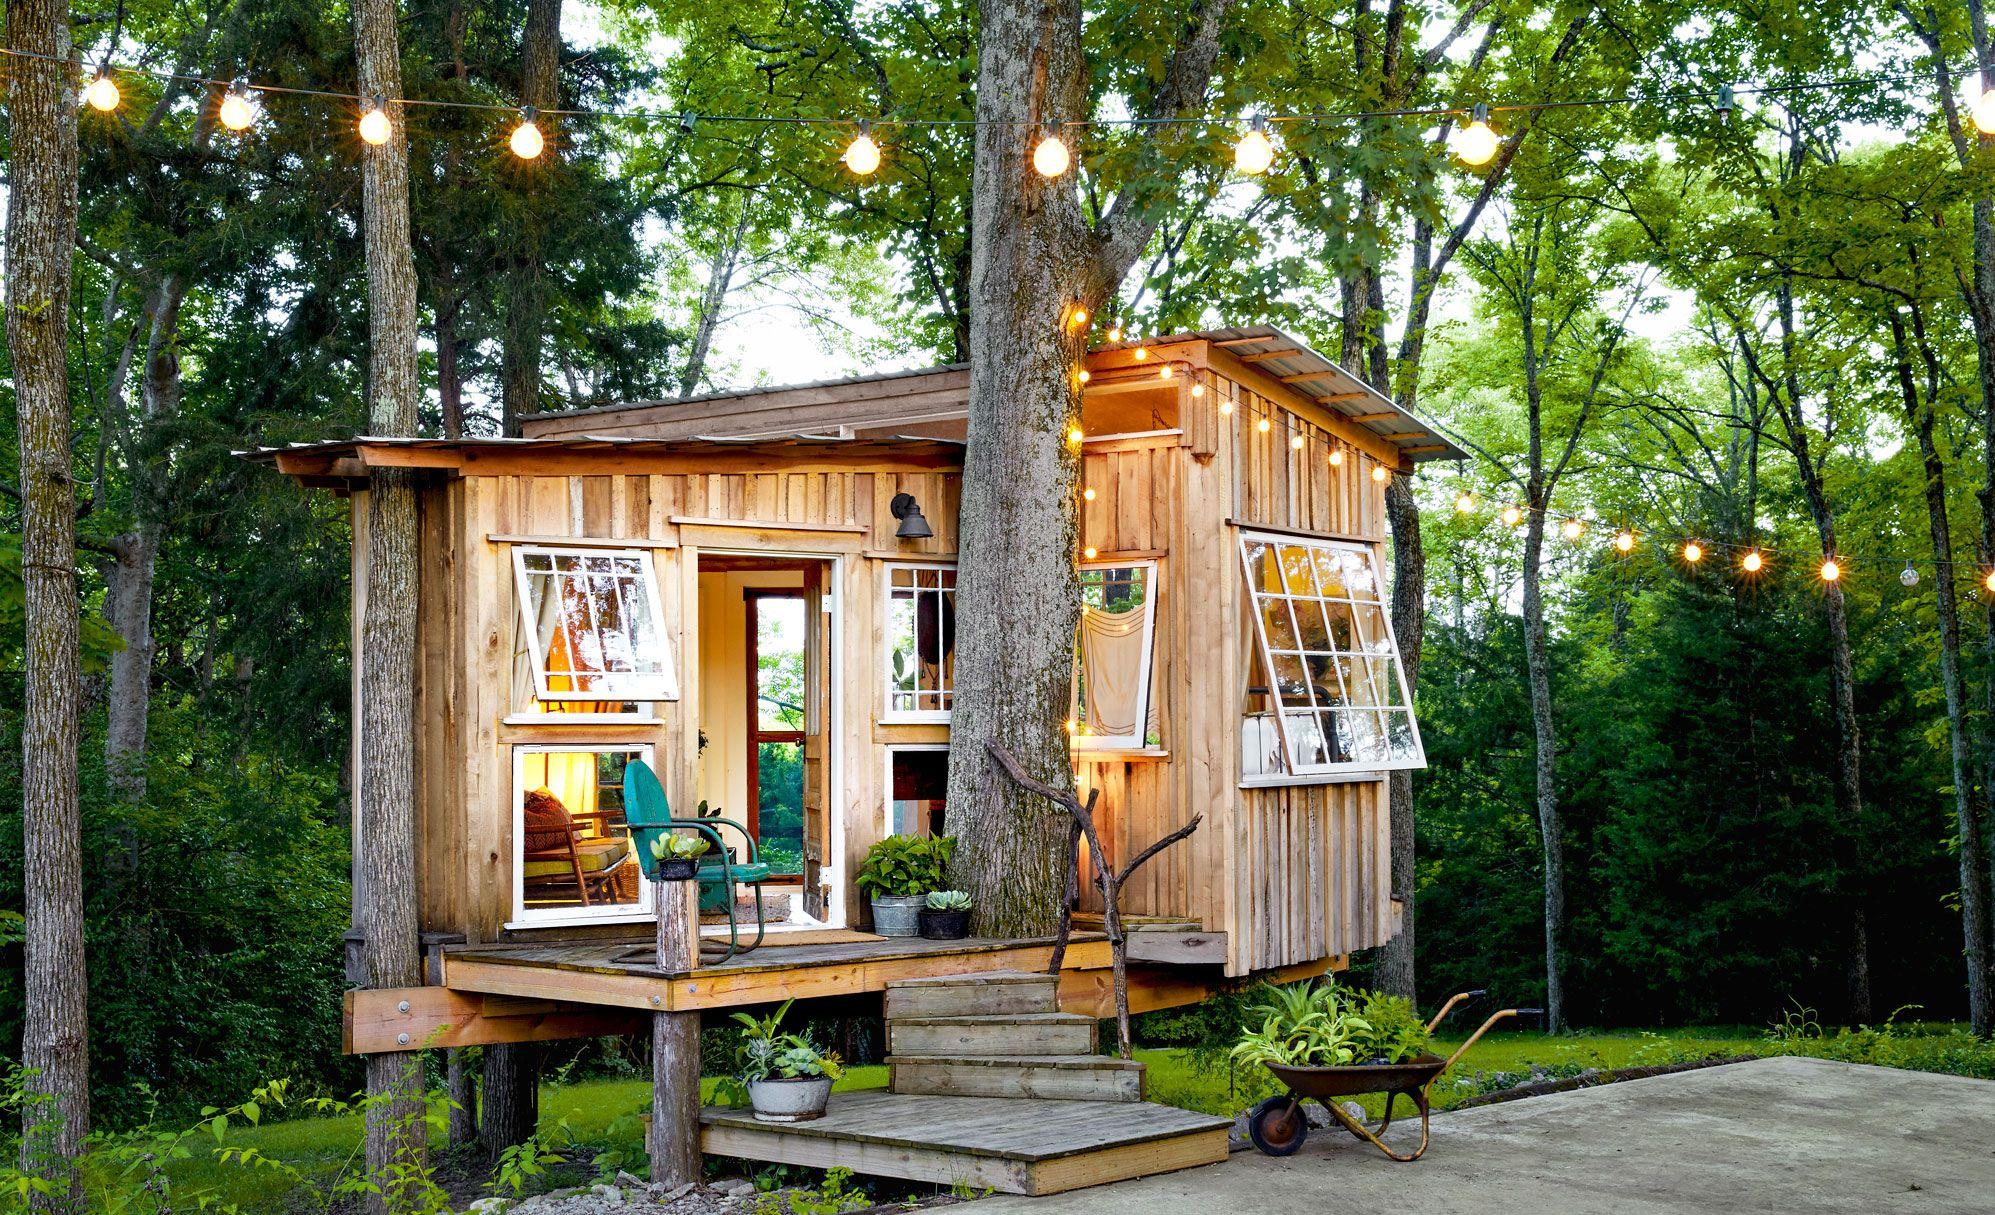 Nashville Treehouse - Nashville Tiny House